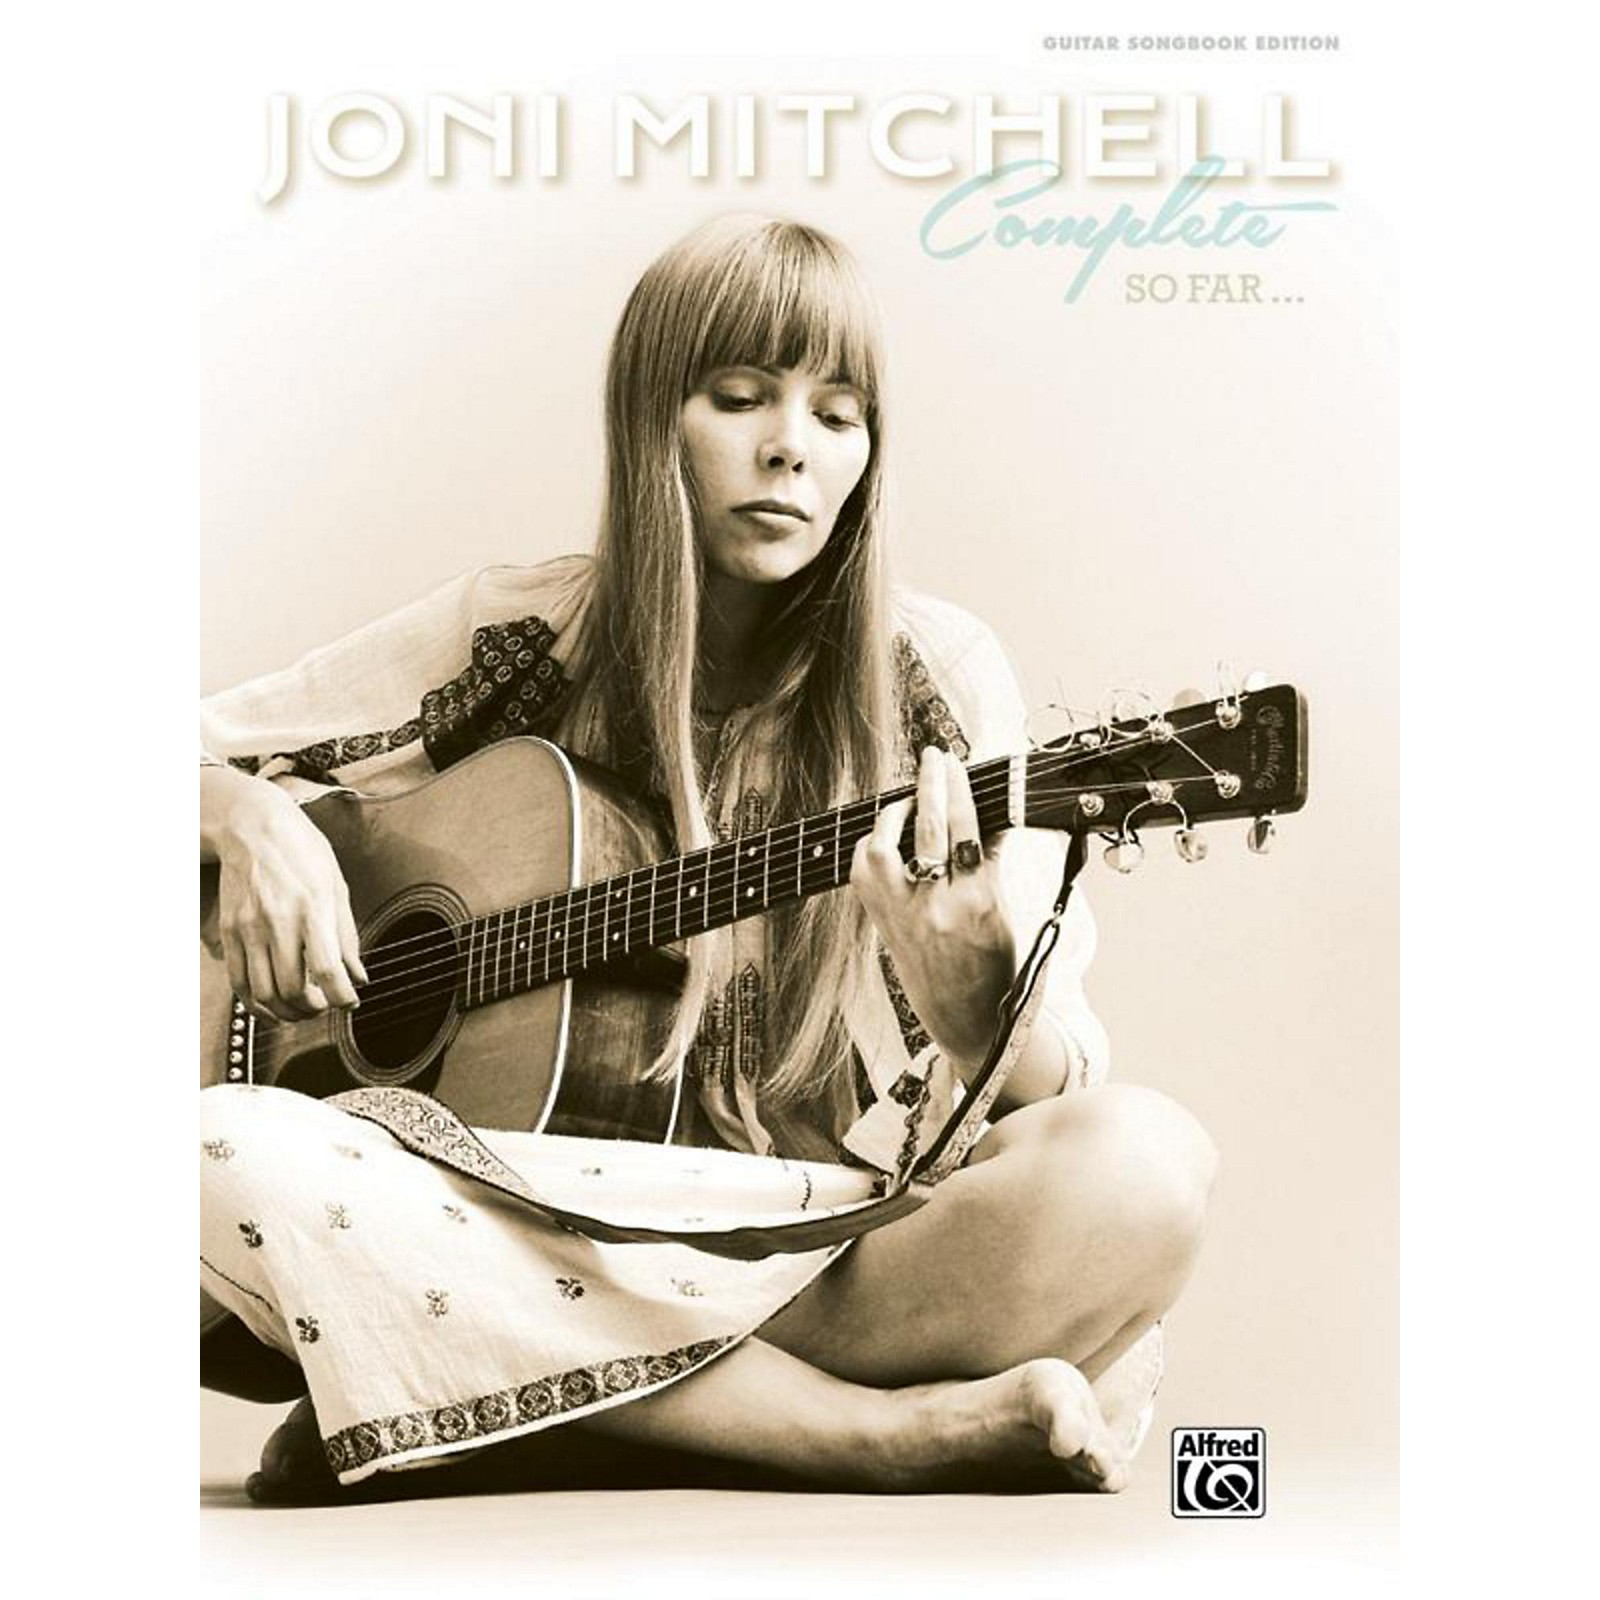 Alfred Joni Mitchell - Complete So Far Guitar Songbook Hardcover Edition